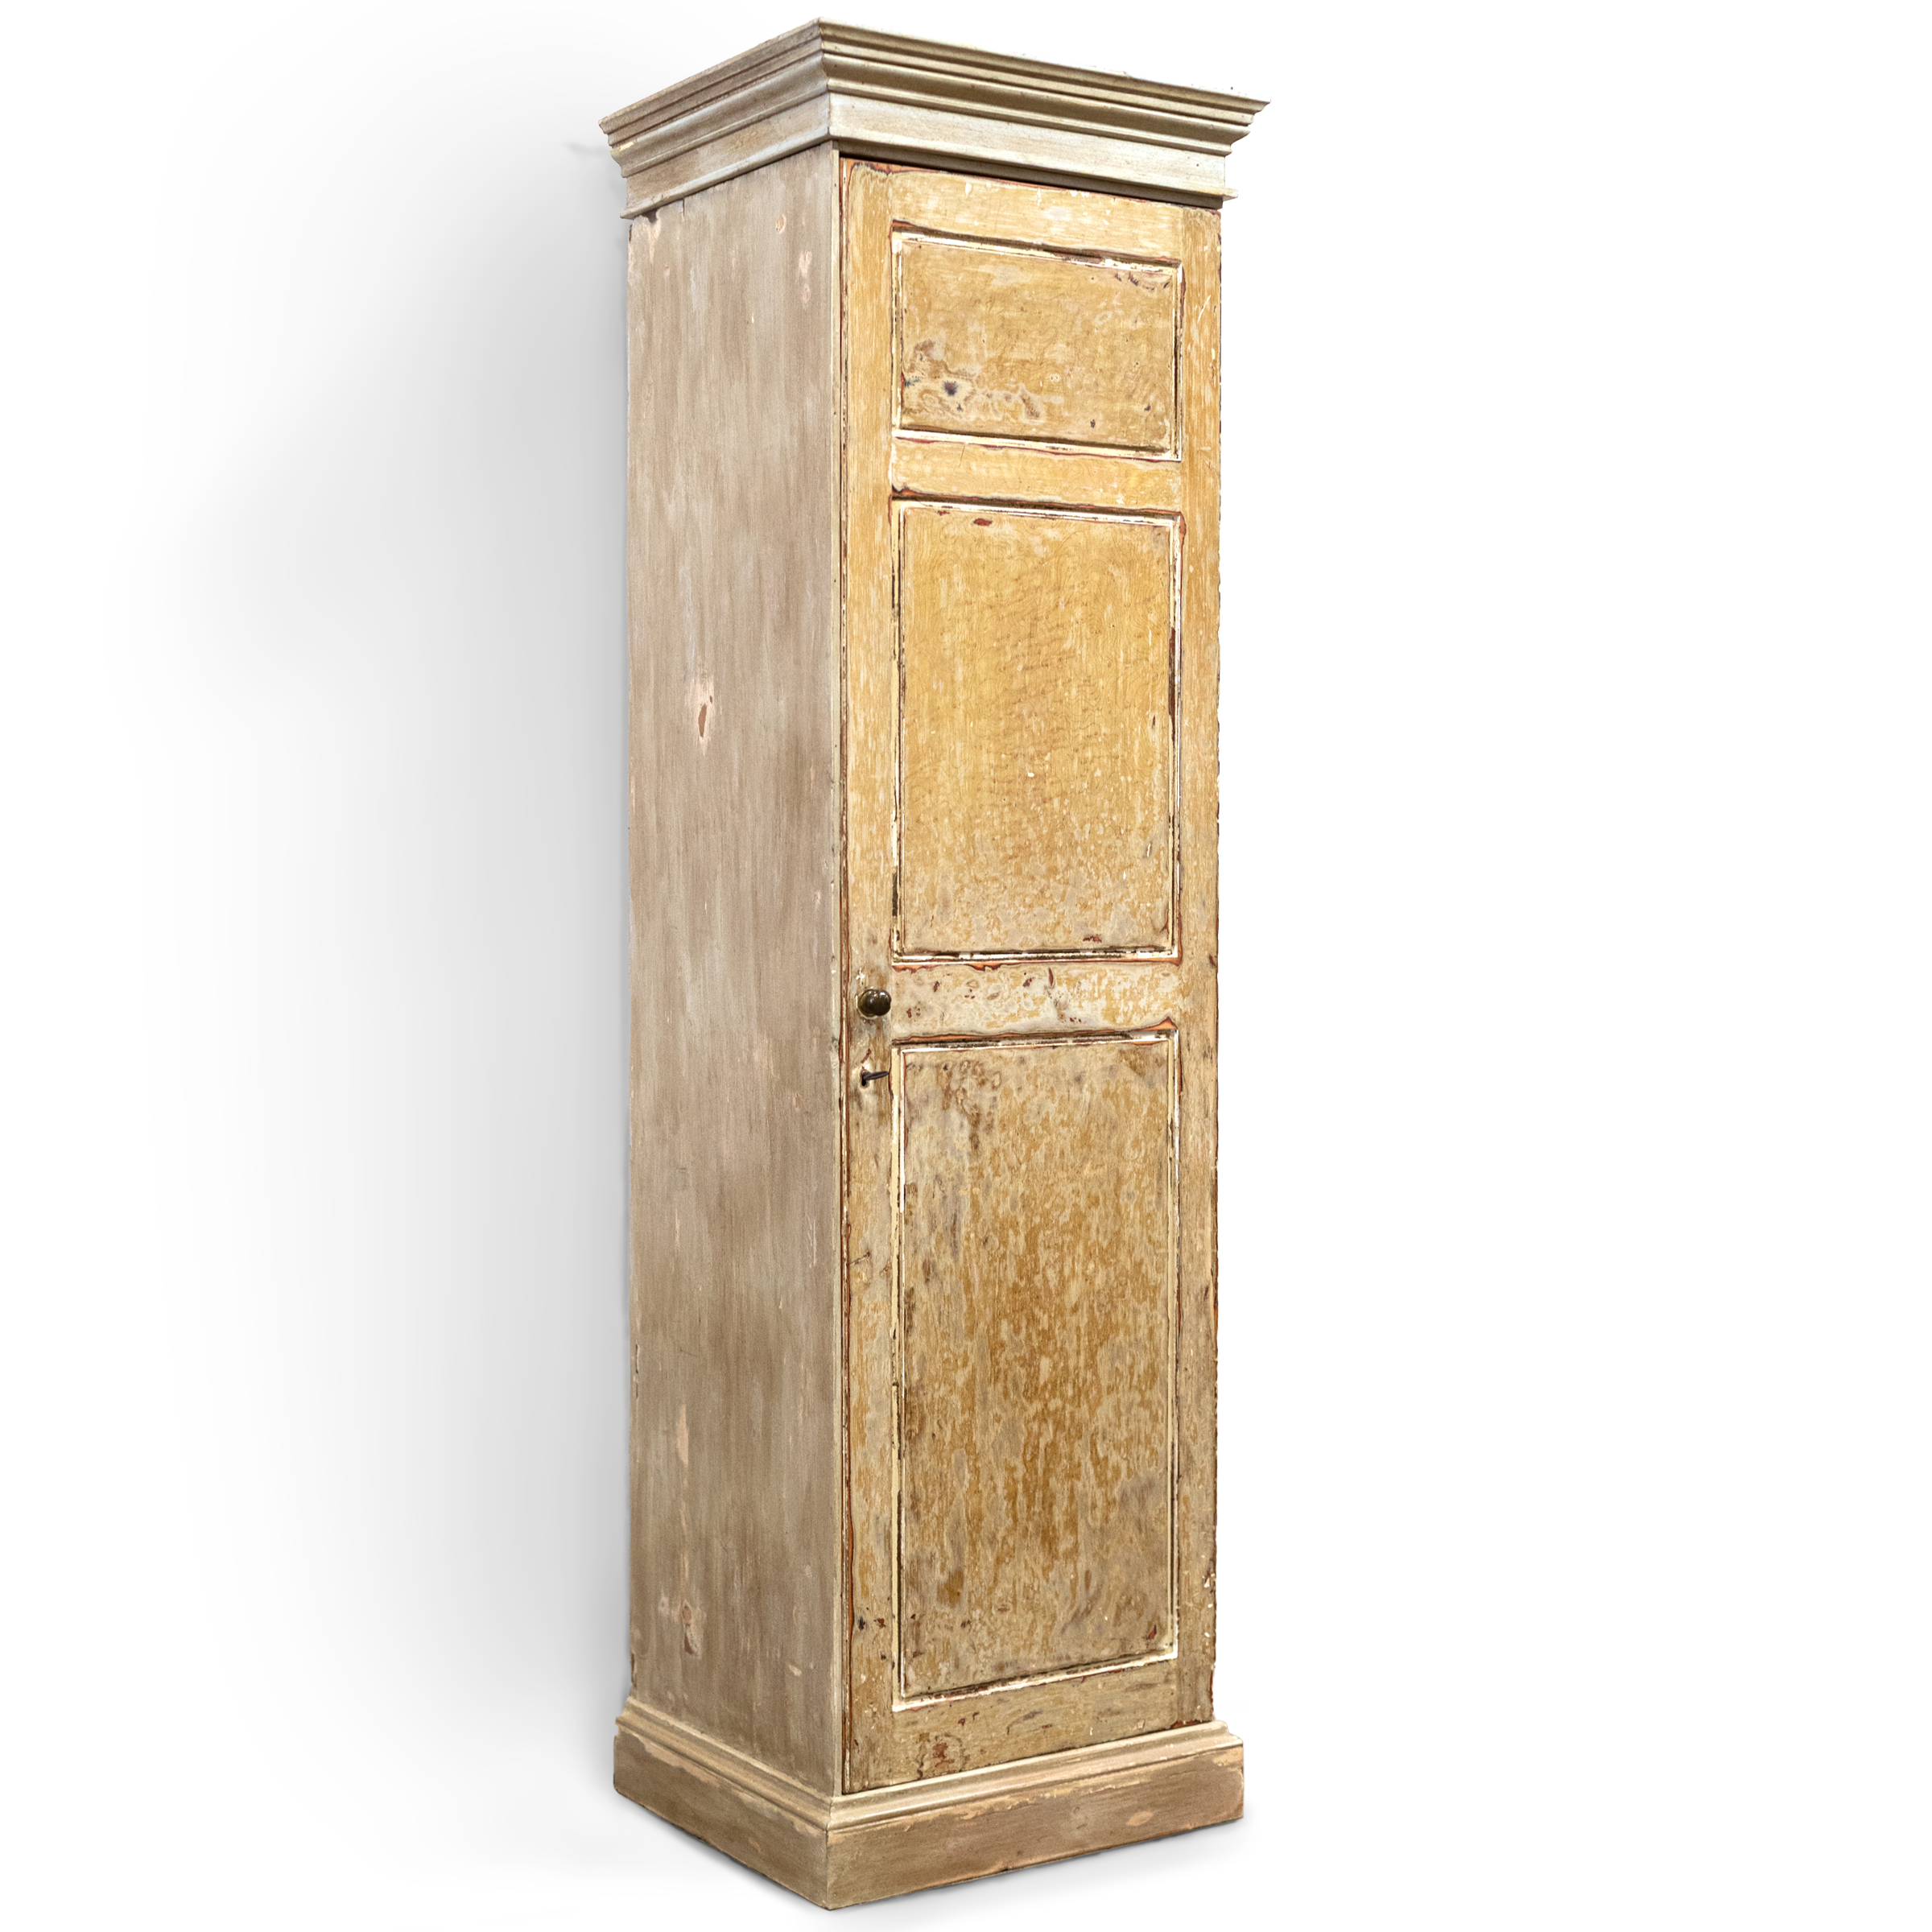 https://cdn.shopify.com/s/files/1/1341/7889/products/narrow-antique-hallway-cupboard-reclaimed-tall-cabinet.png?v=1619701438,https://cdn.shopify.com/s/files/1/1341/7889/products/antiquecoatcupbouardtallskinnycabinet-14.jpg?v=1619701439,https://cdn.shopify.